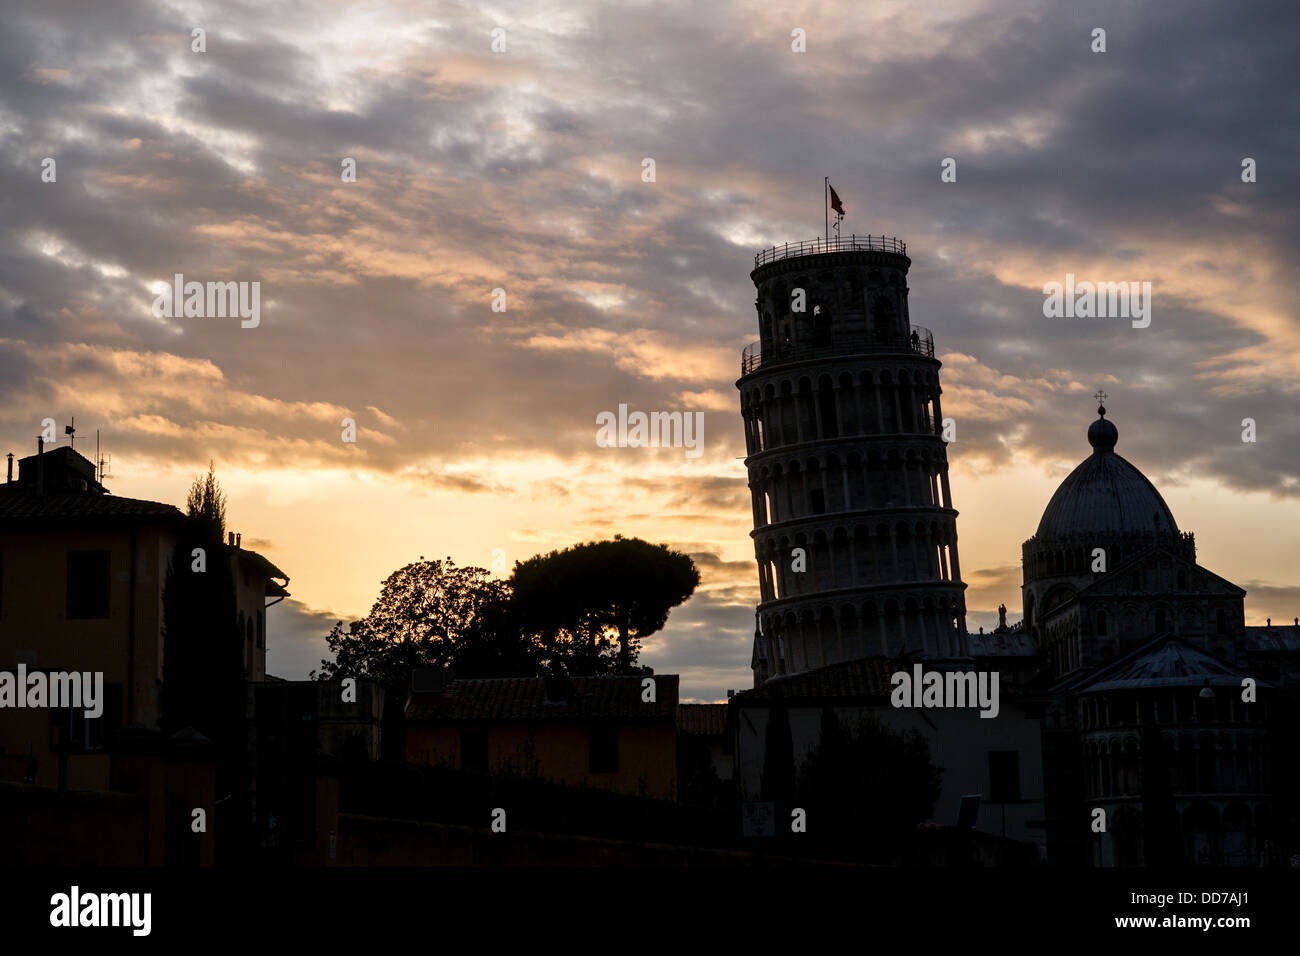 Silhouette Of Leaning Tower And Cathedral Pisa Italy